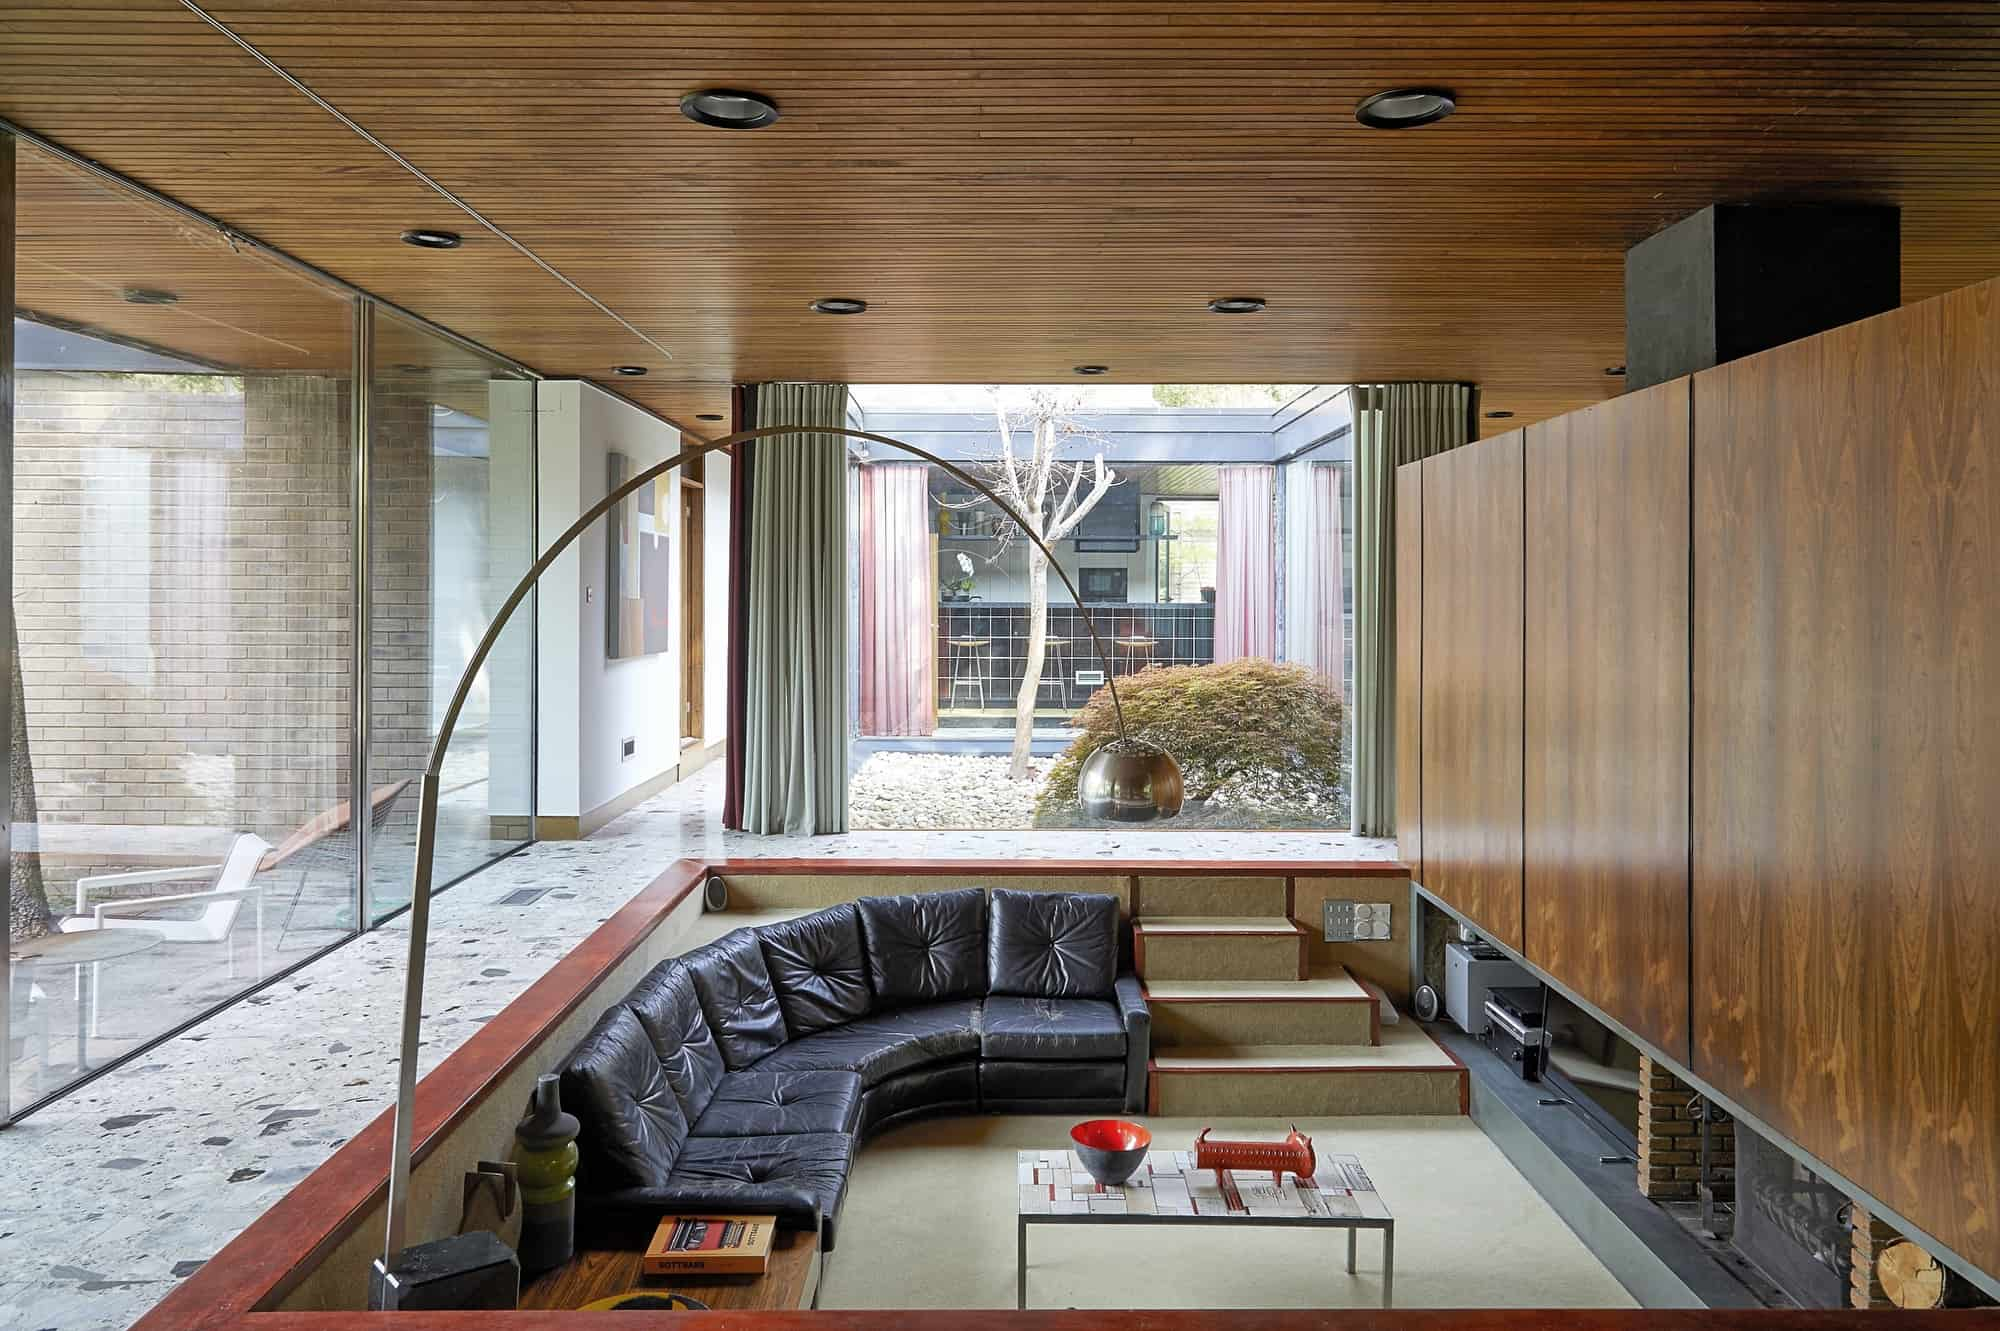 The Modernist House NG15 - A very special mid-century home with original interiors and authentic furniture and accessories - The Location Guys